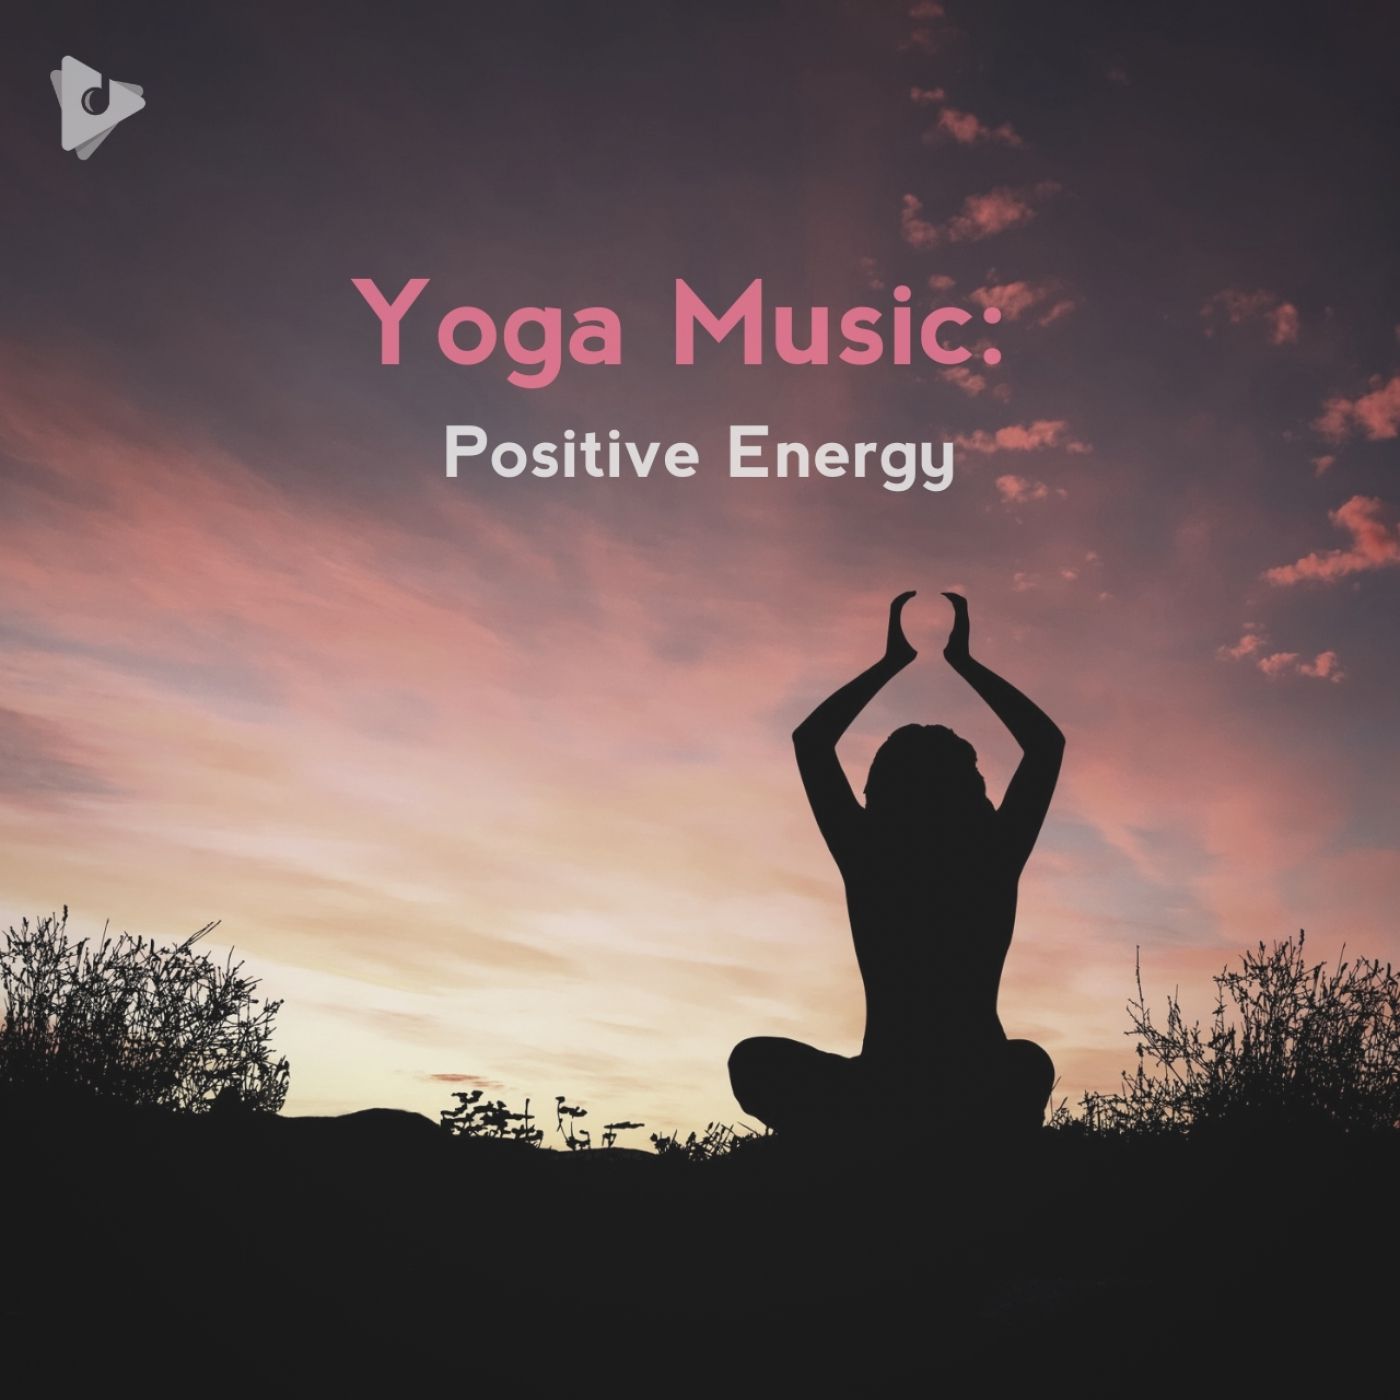 Yoga Music: Positive Energy